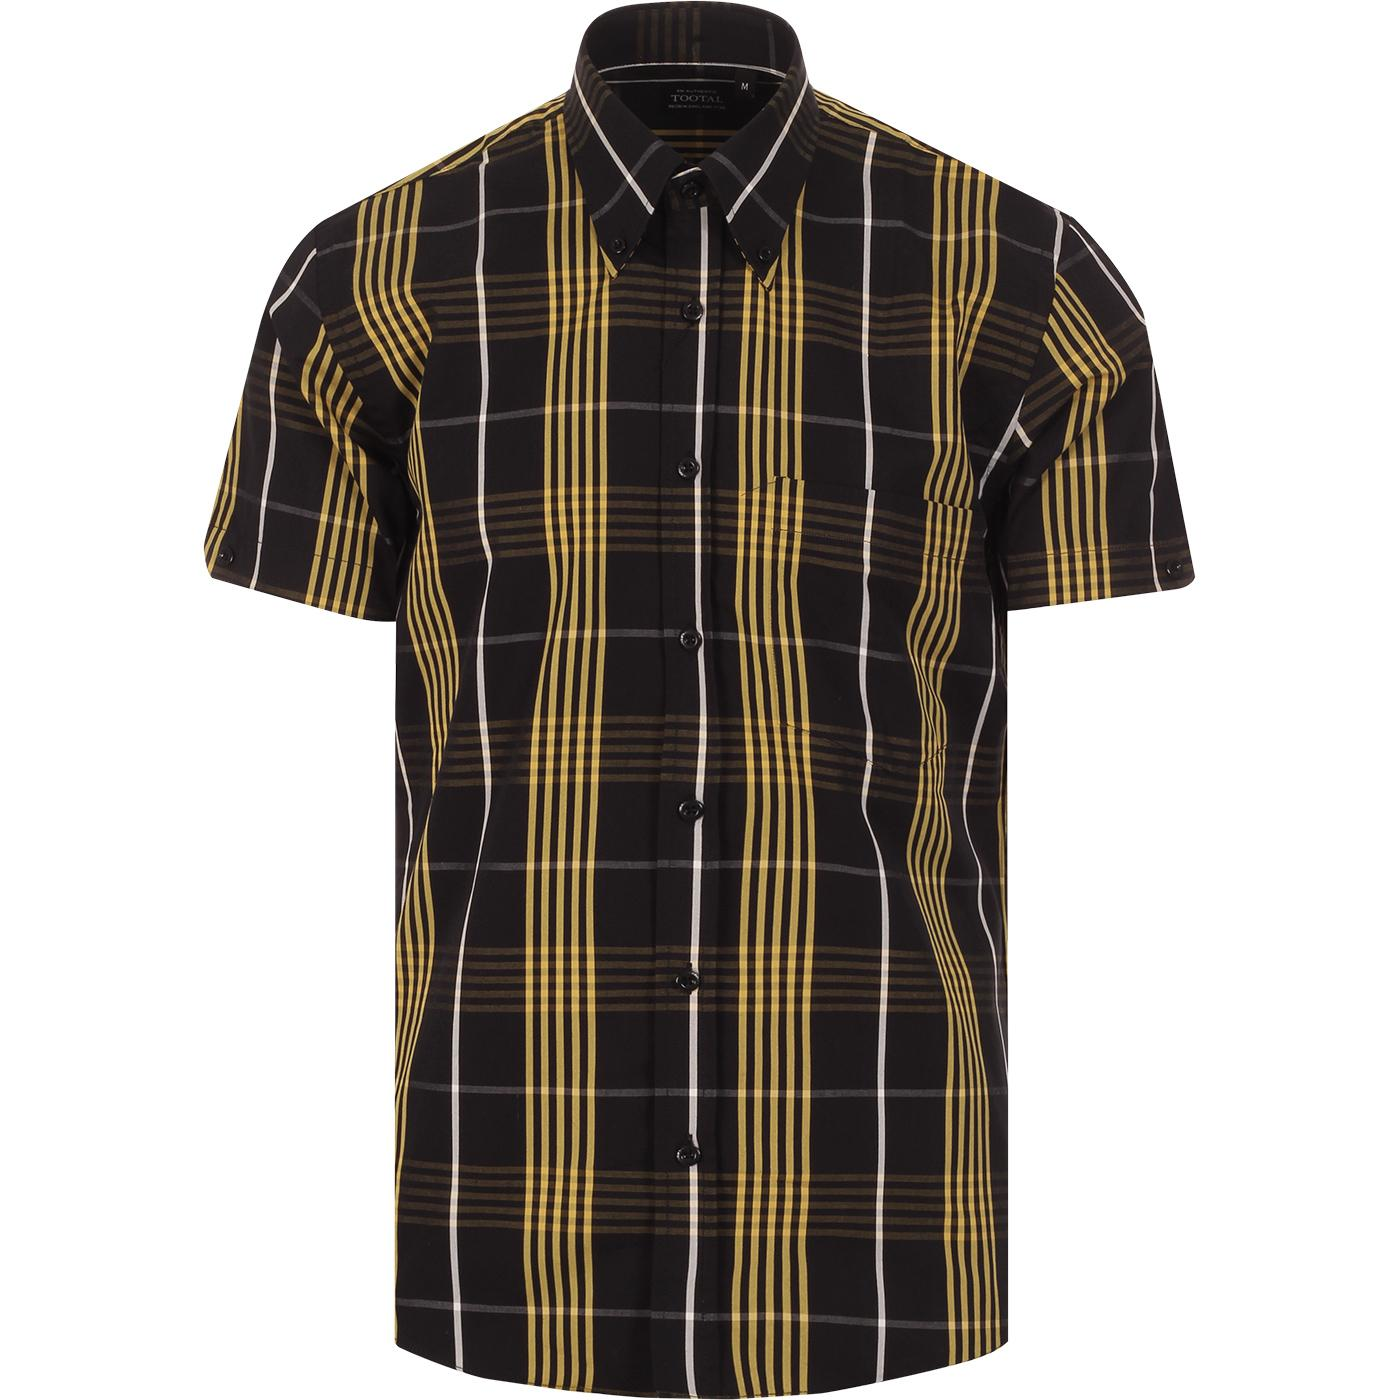 TOOTAL Classic Mod Plaid Check Button Down Shirt